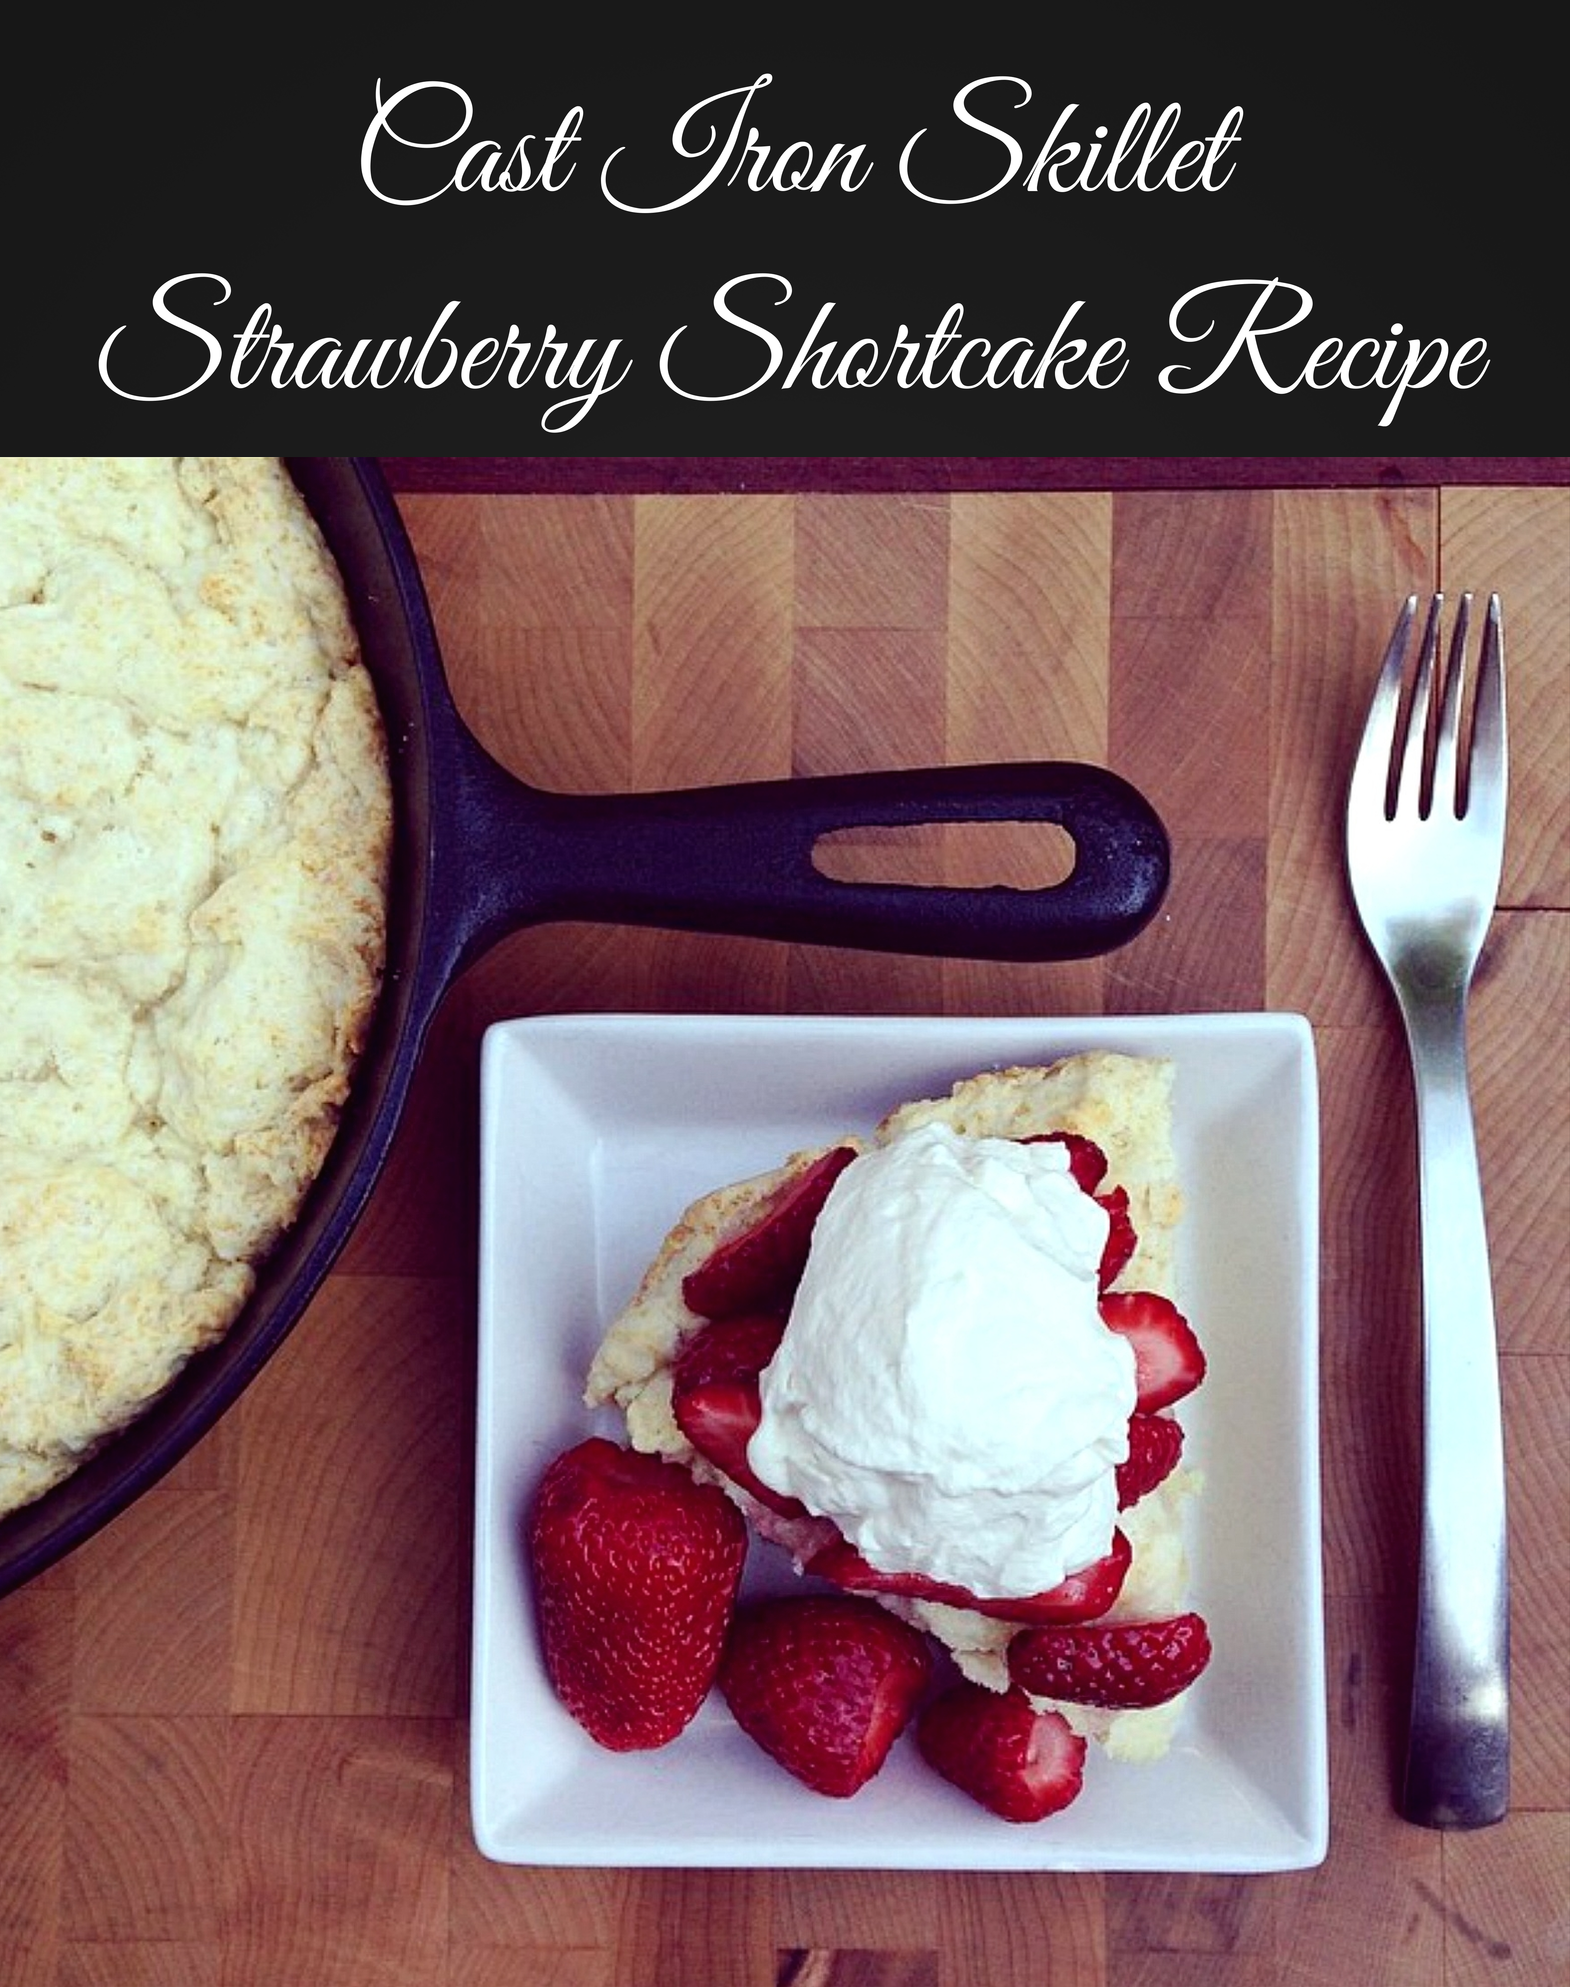 Cast Iron Skillet Strawberry Shortcake Recipe. The perfect summer treat with a biscuit or scone style shortcake